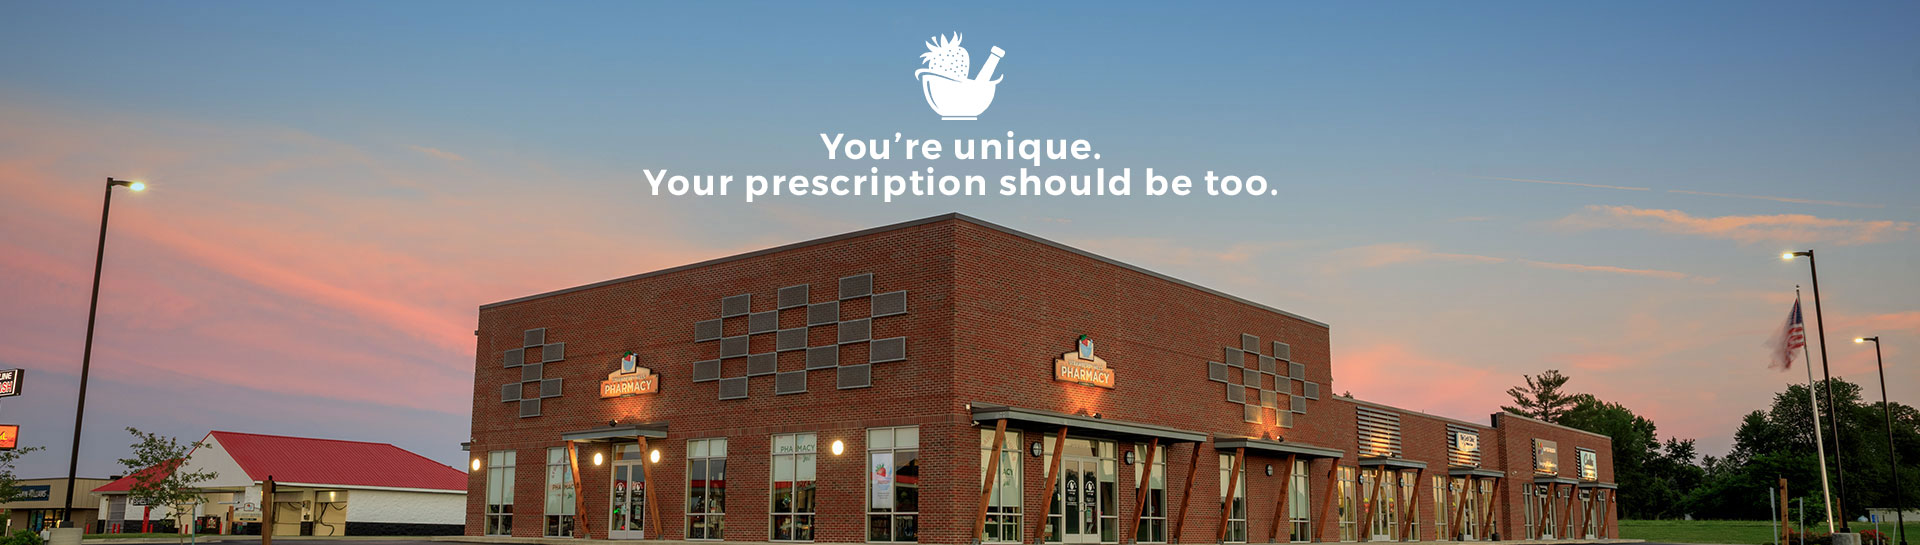 You're unique. Your prescription should be too.